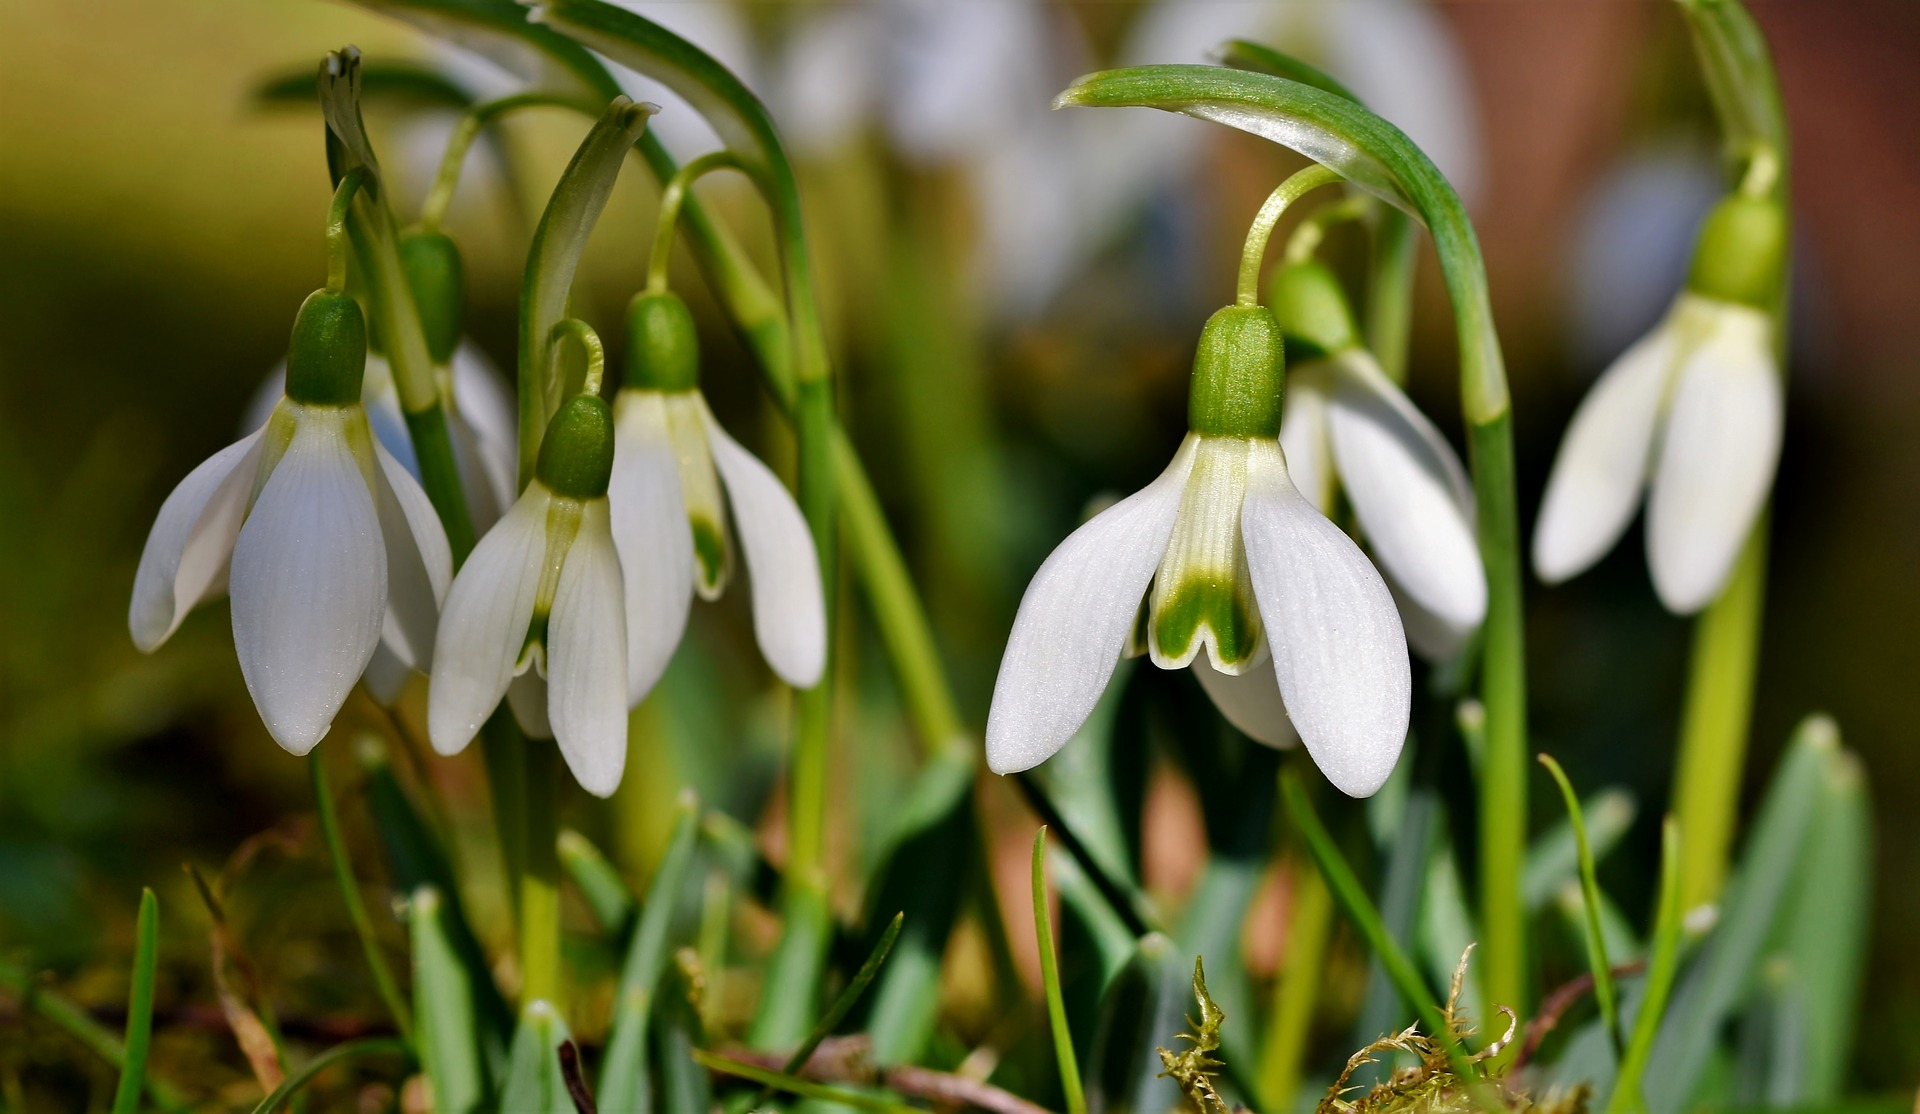 A group of snowdrops growing